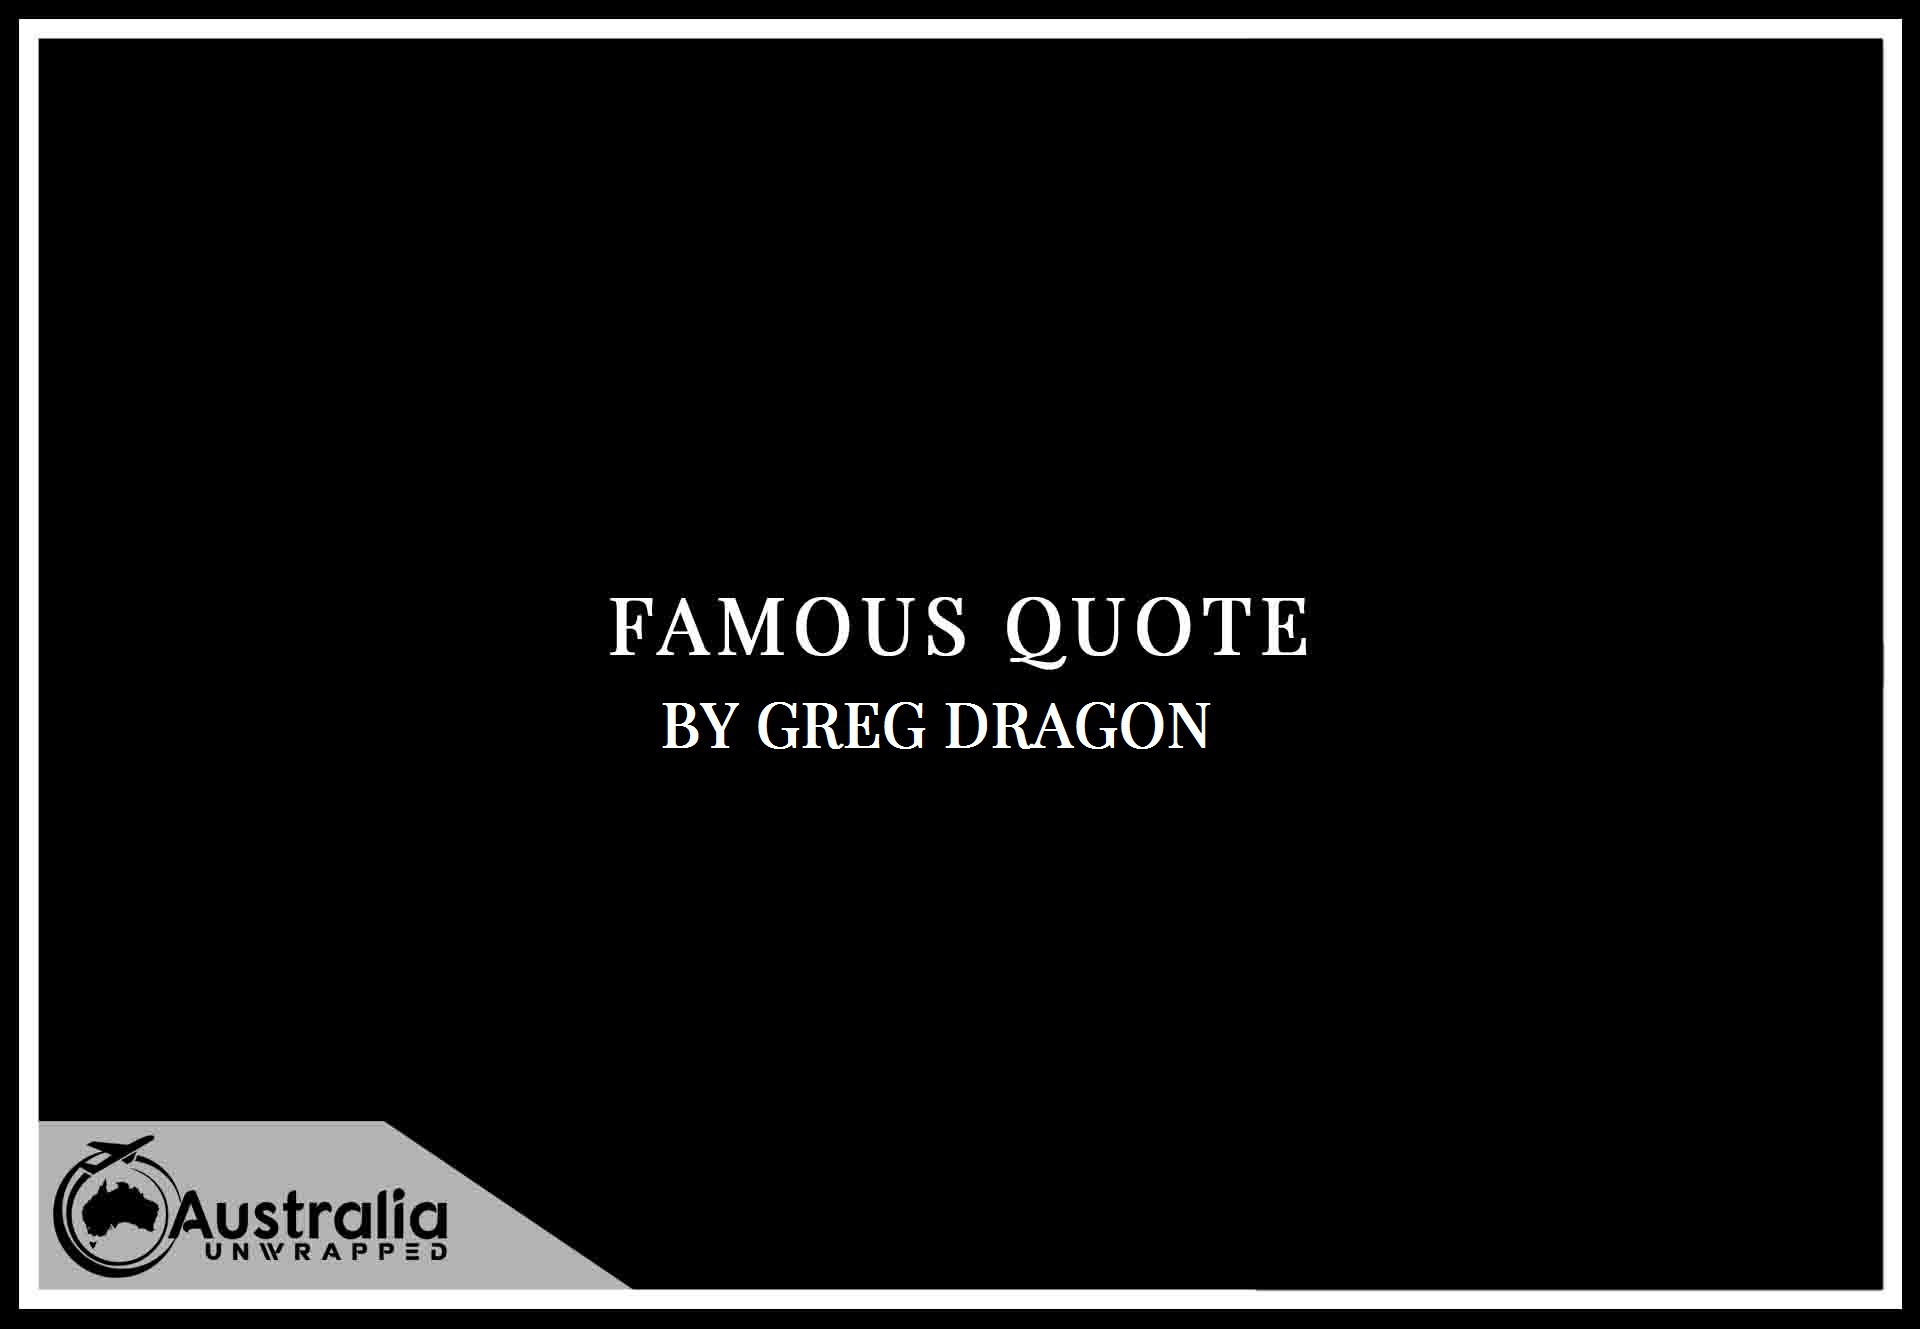 Greg Dragon's Top 1 Popular and Famous Quotes